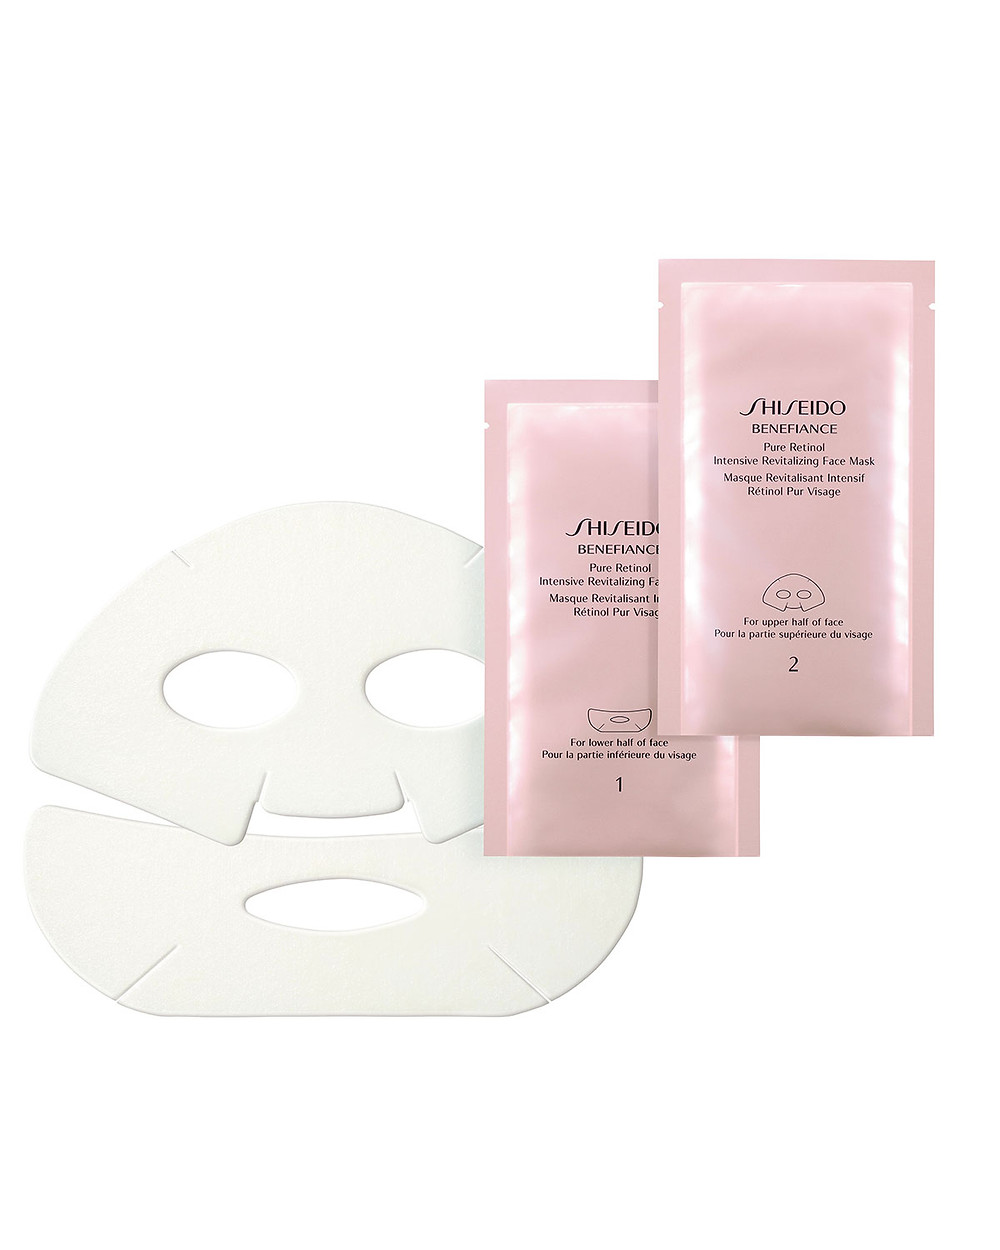 Shiseido Benefiance Pure Retinol Intensive Revitalizing Face Mask $65 - Recommended for all skin types